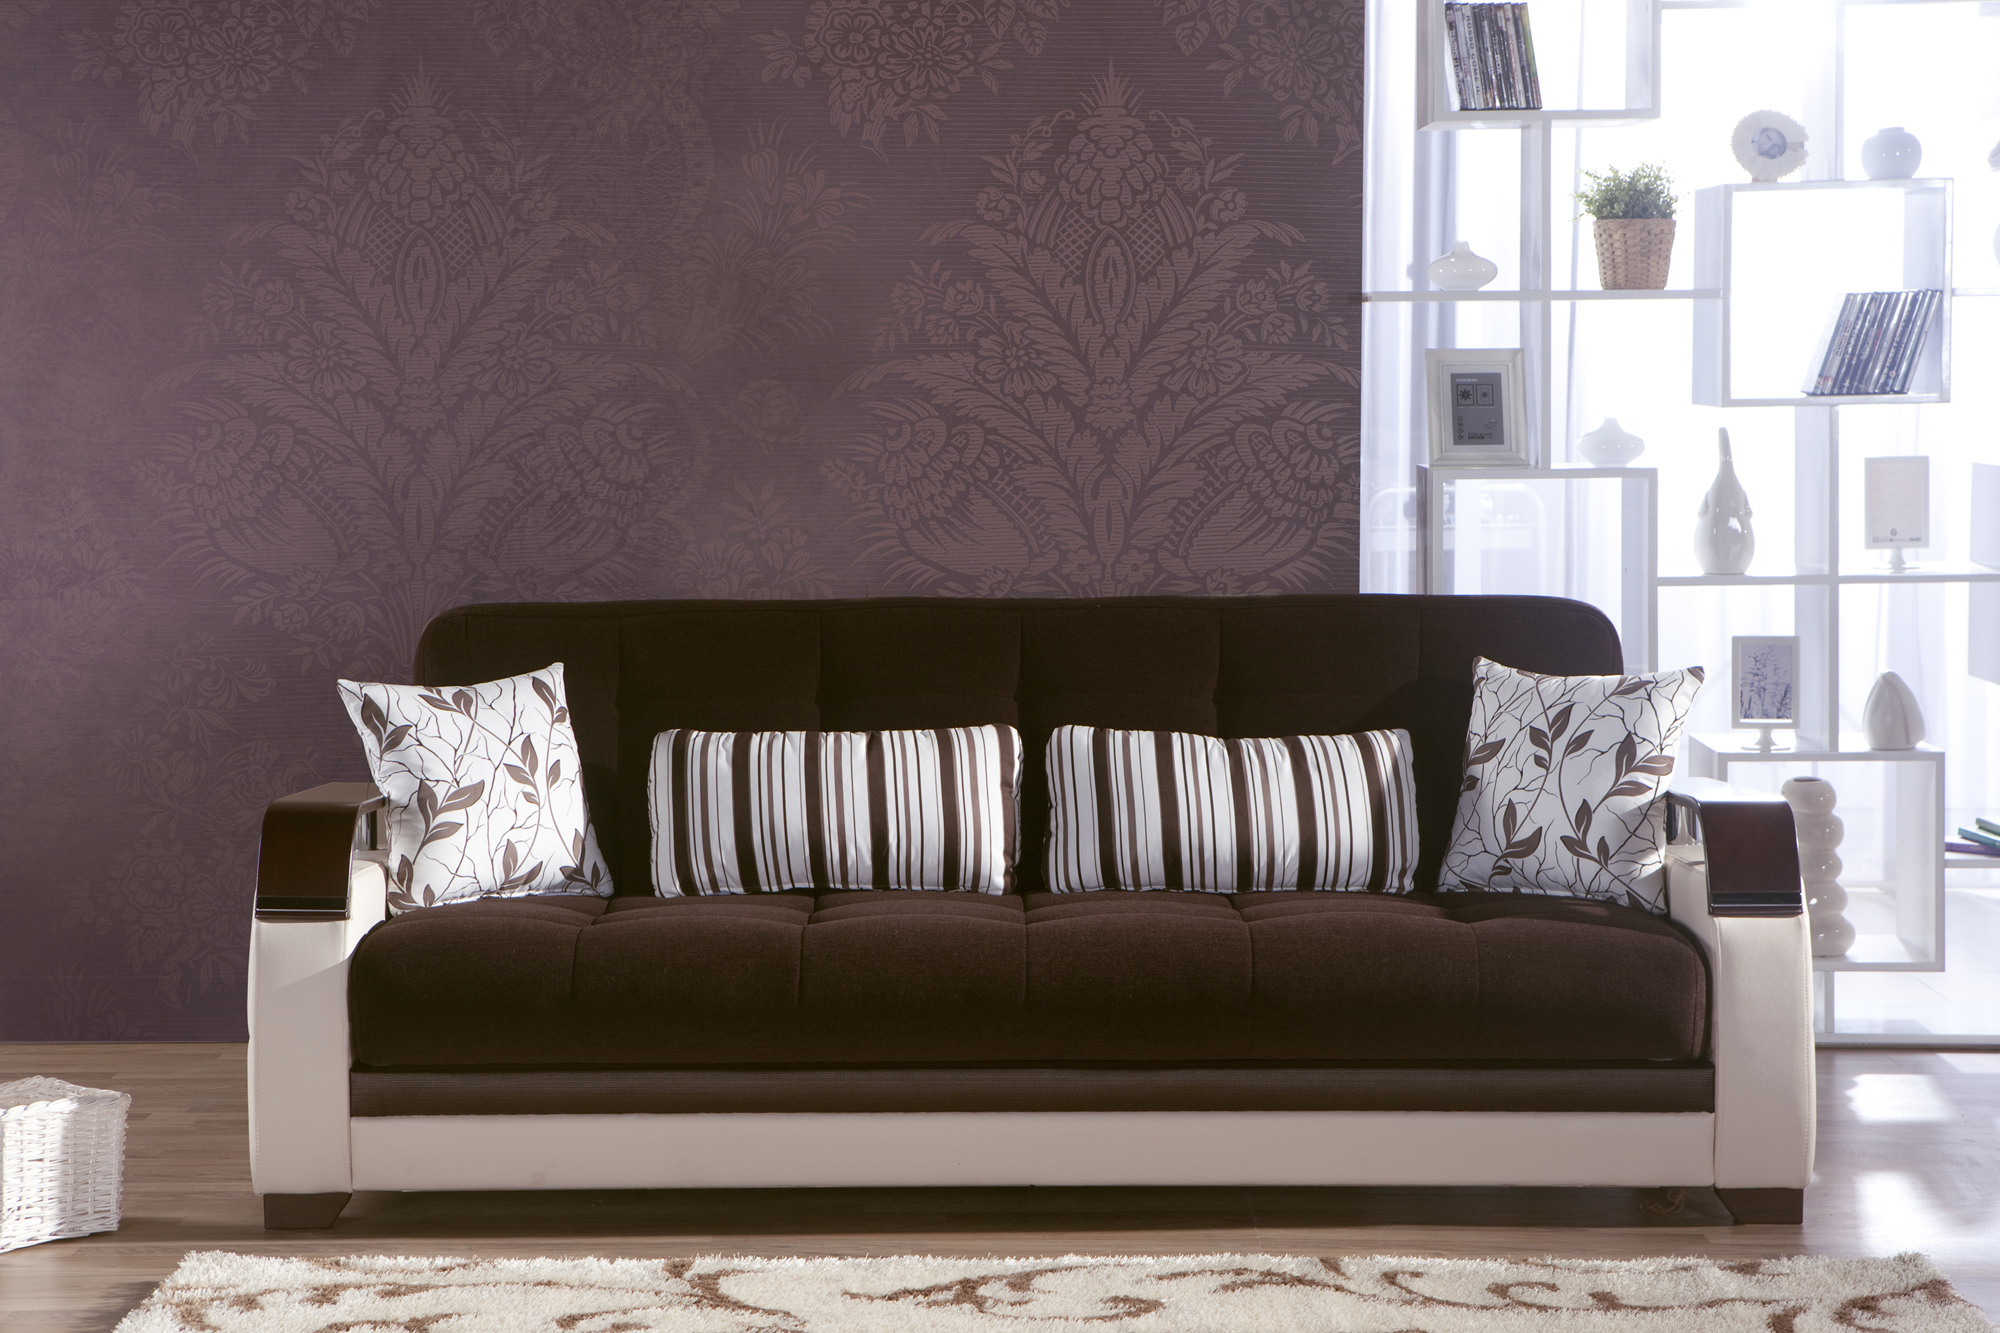 Brown Sofas For Classic Home Design : Brown Sofa White Frame White Rugs  Brown Wallpaper